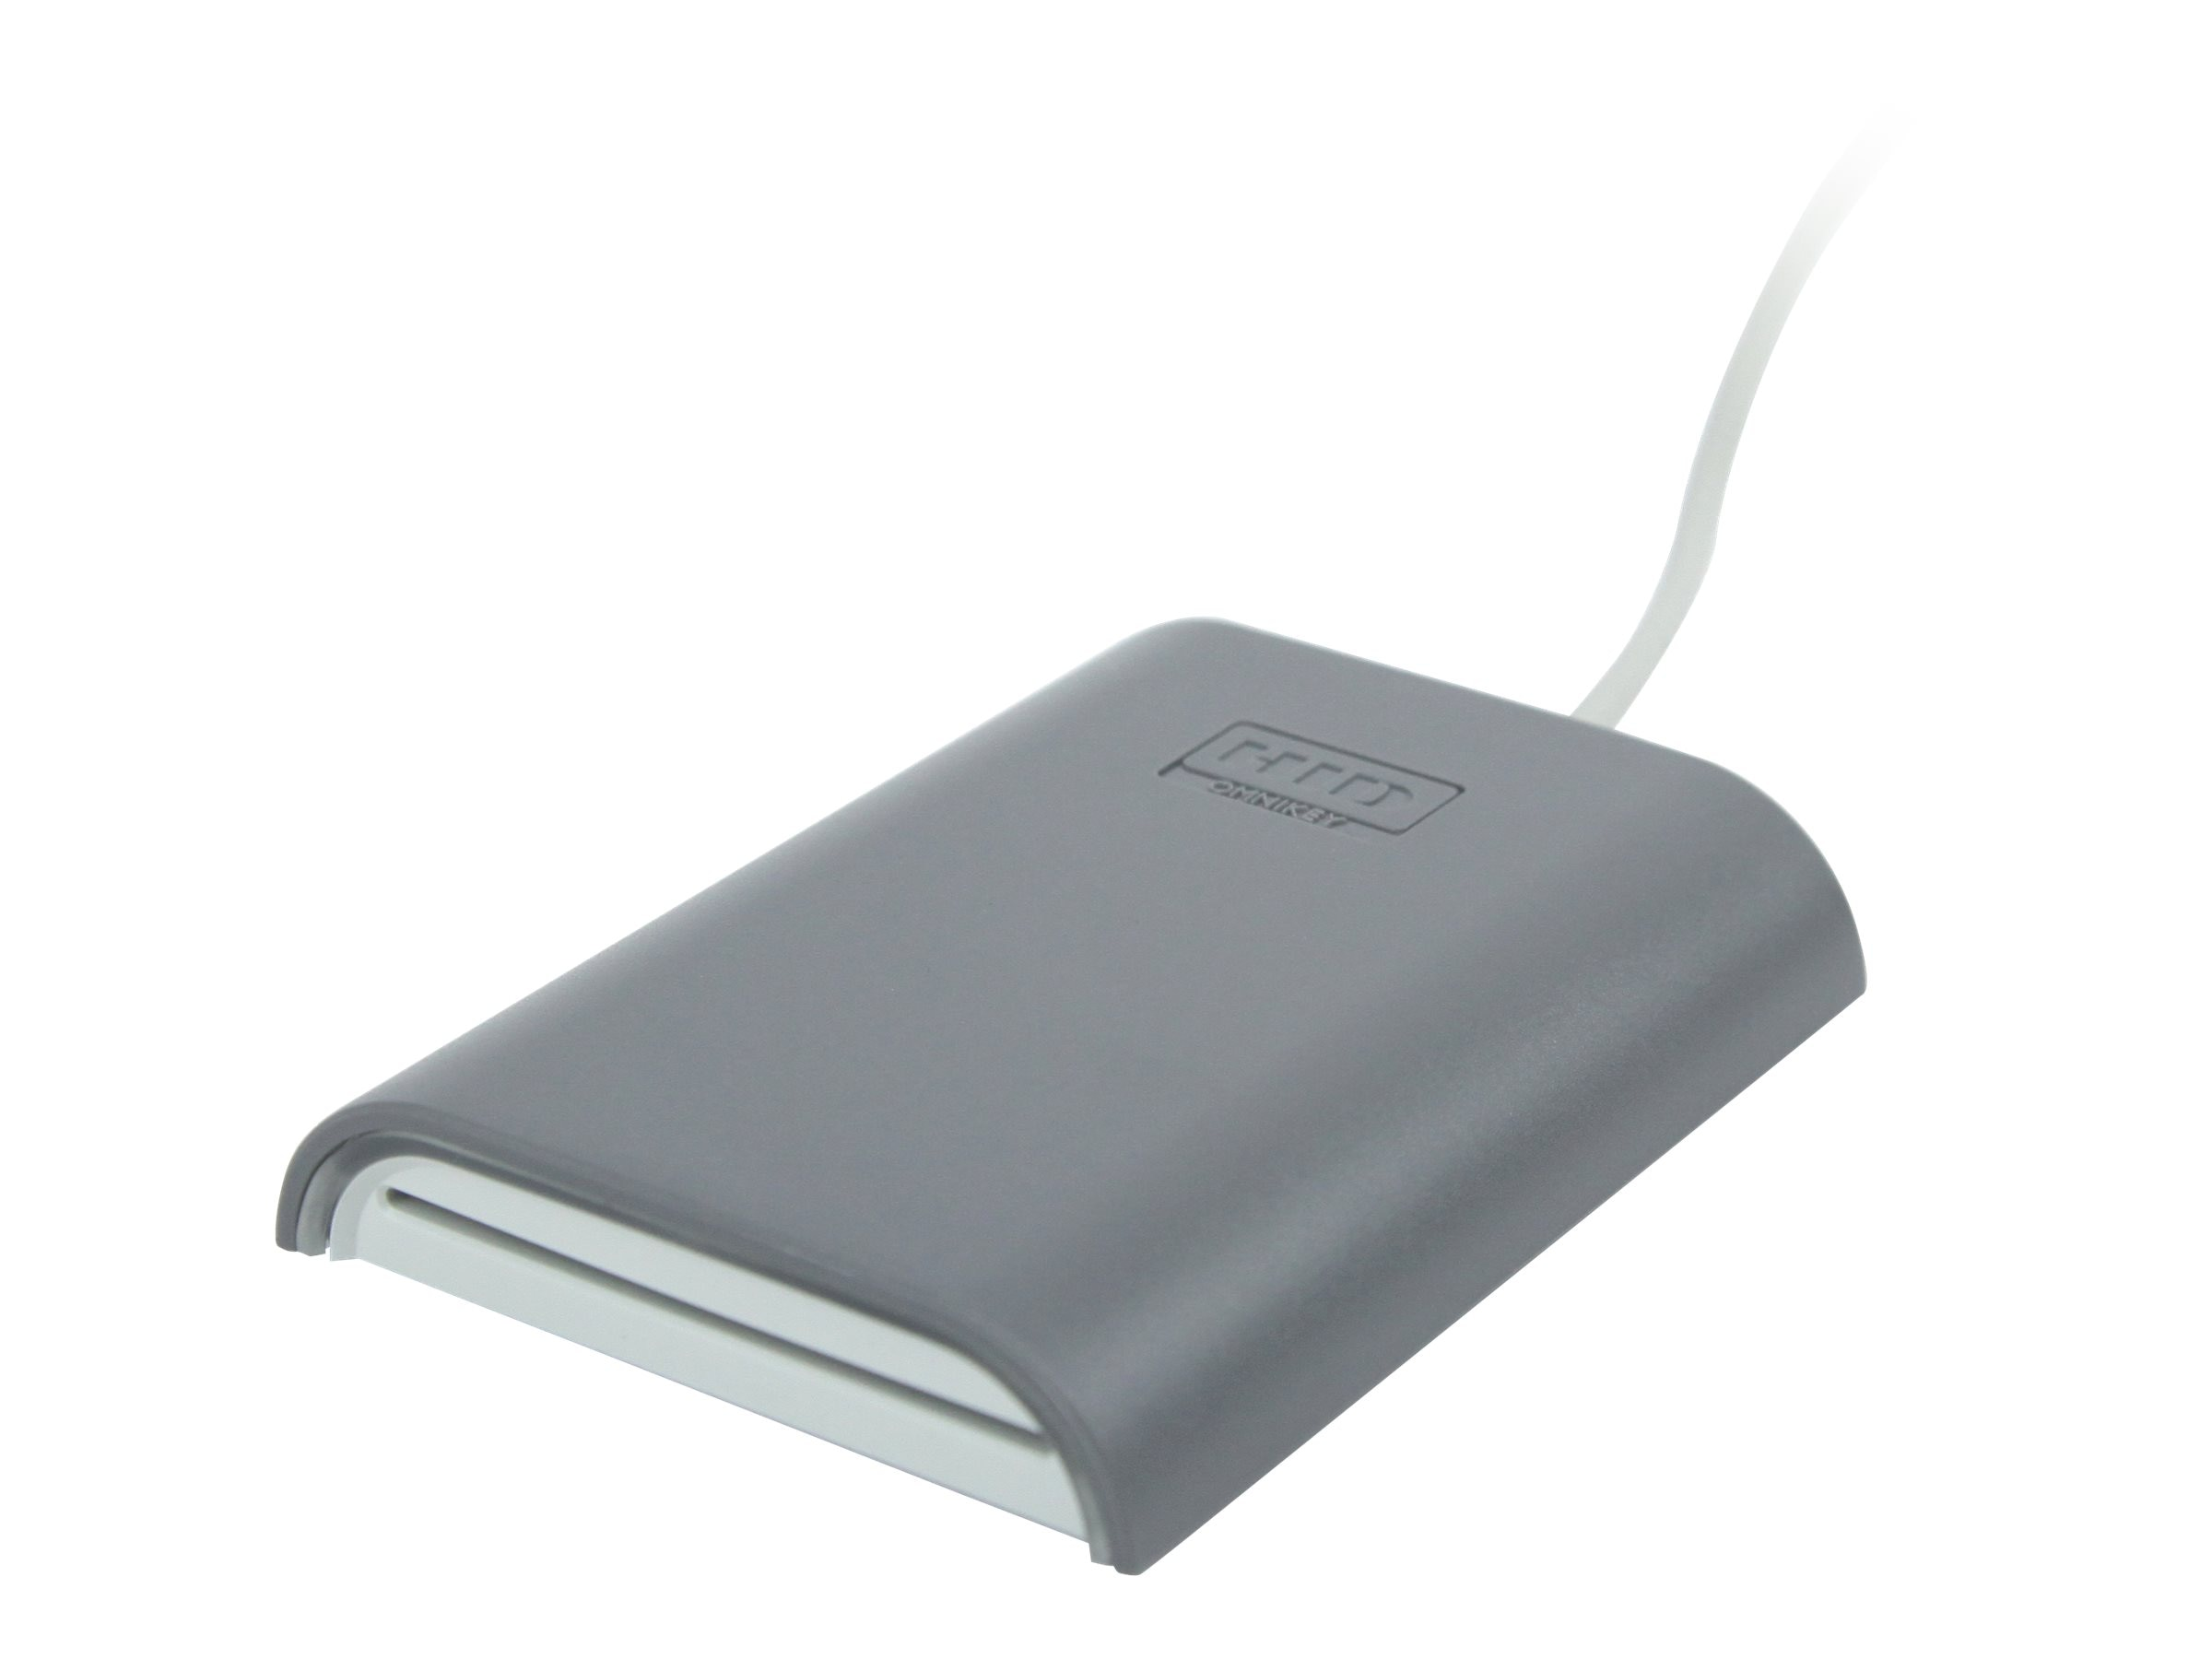 Synercard OmniKey 5421 SS USB Smart Card Reader, R54210001, 16930341, PC Card/Flash Memory Readers